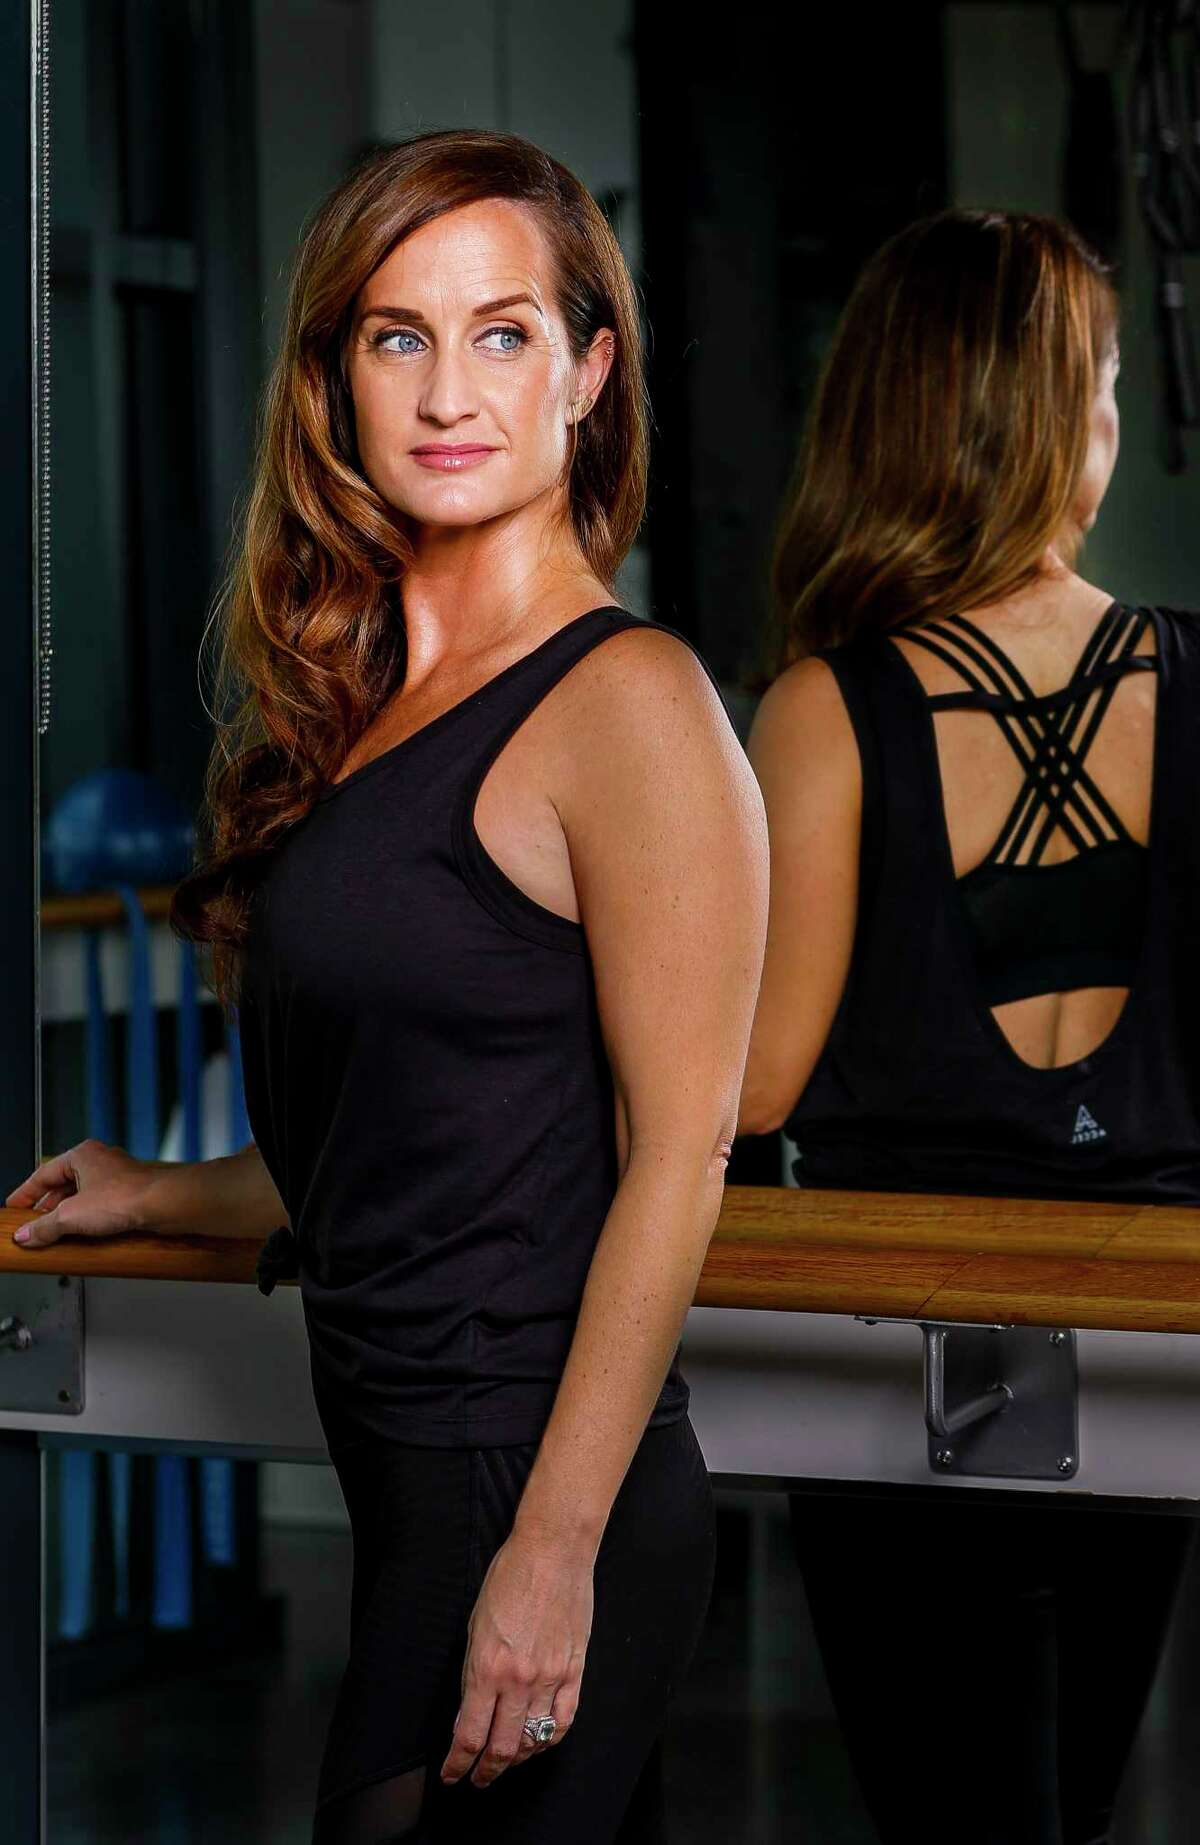 """Megan Eddings, who founded Accel Lifestyle, a clothing company who developed what they call """"anti-stink"""" fabric used in workout clothes, wears one of the company's women's tops at Define studio in the Heights in Houston, Monday, Sept. 30, 2019."""